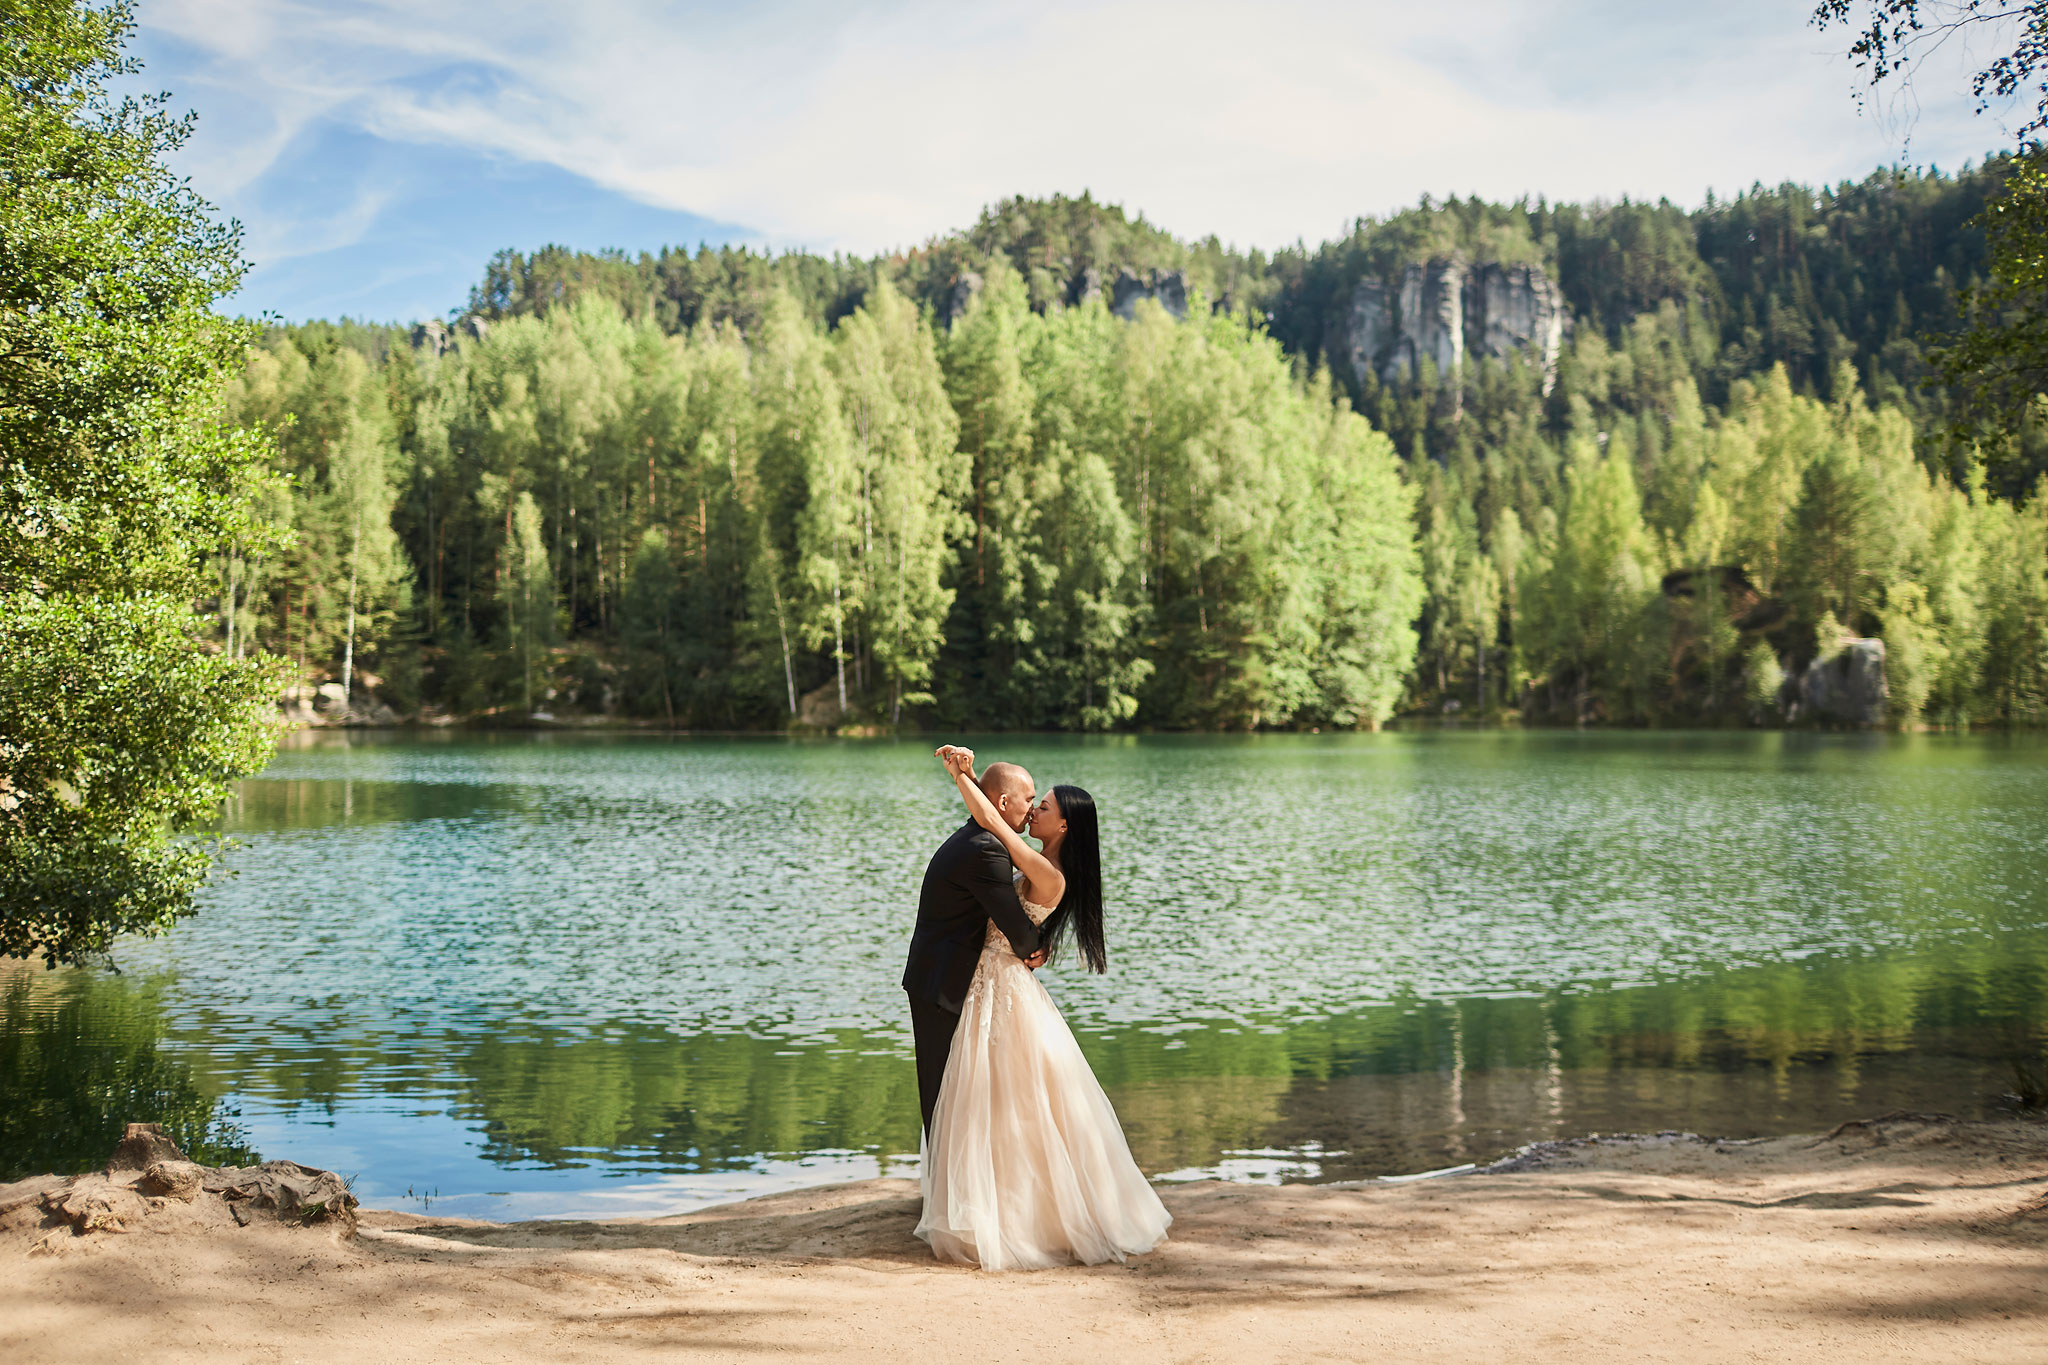 002 emerald lake wedding